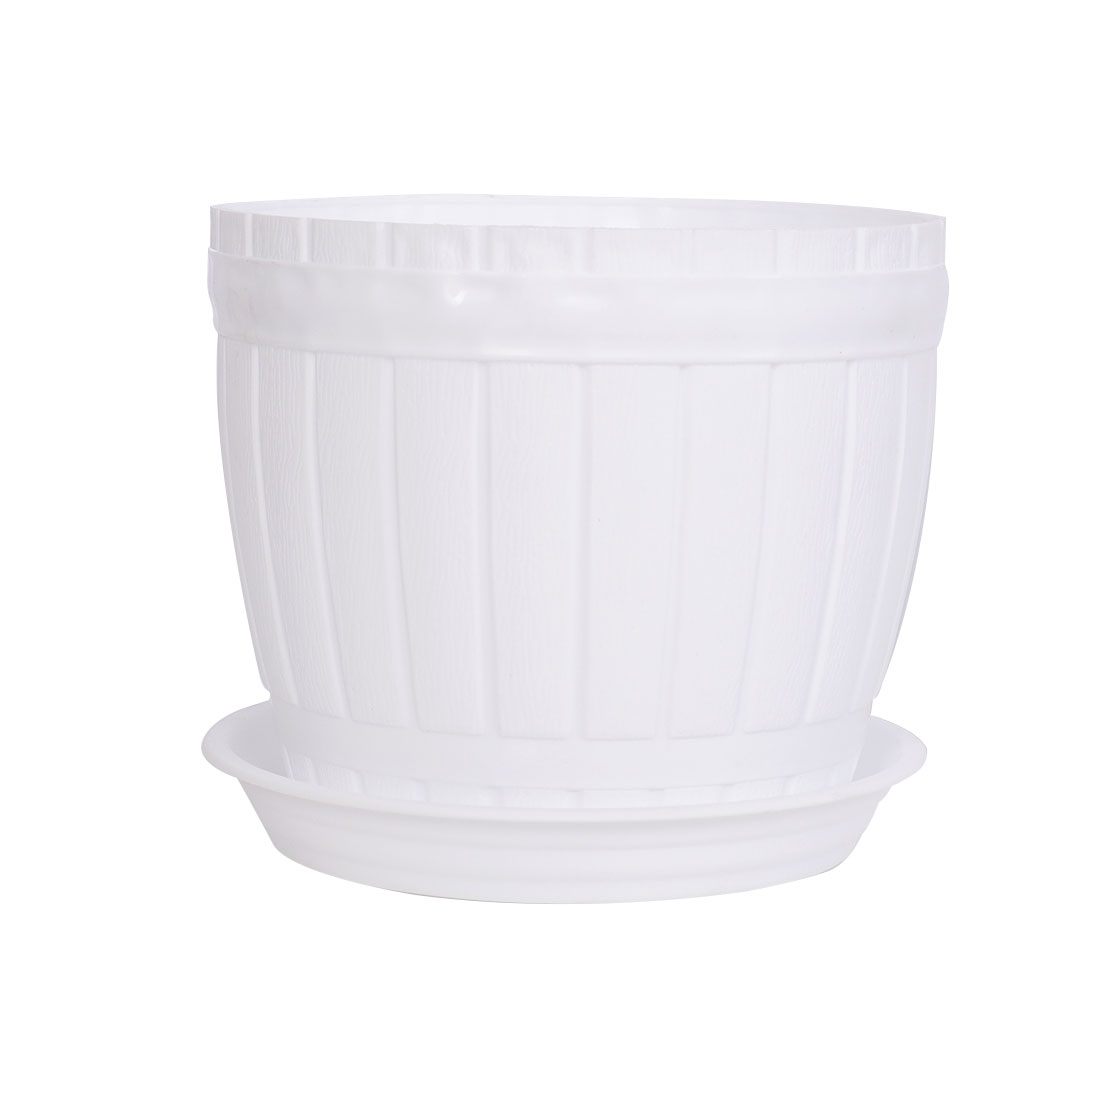 Home Windowsill Hotel Plastic Plant Flower Pot Planter White w Tray